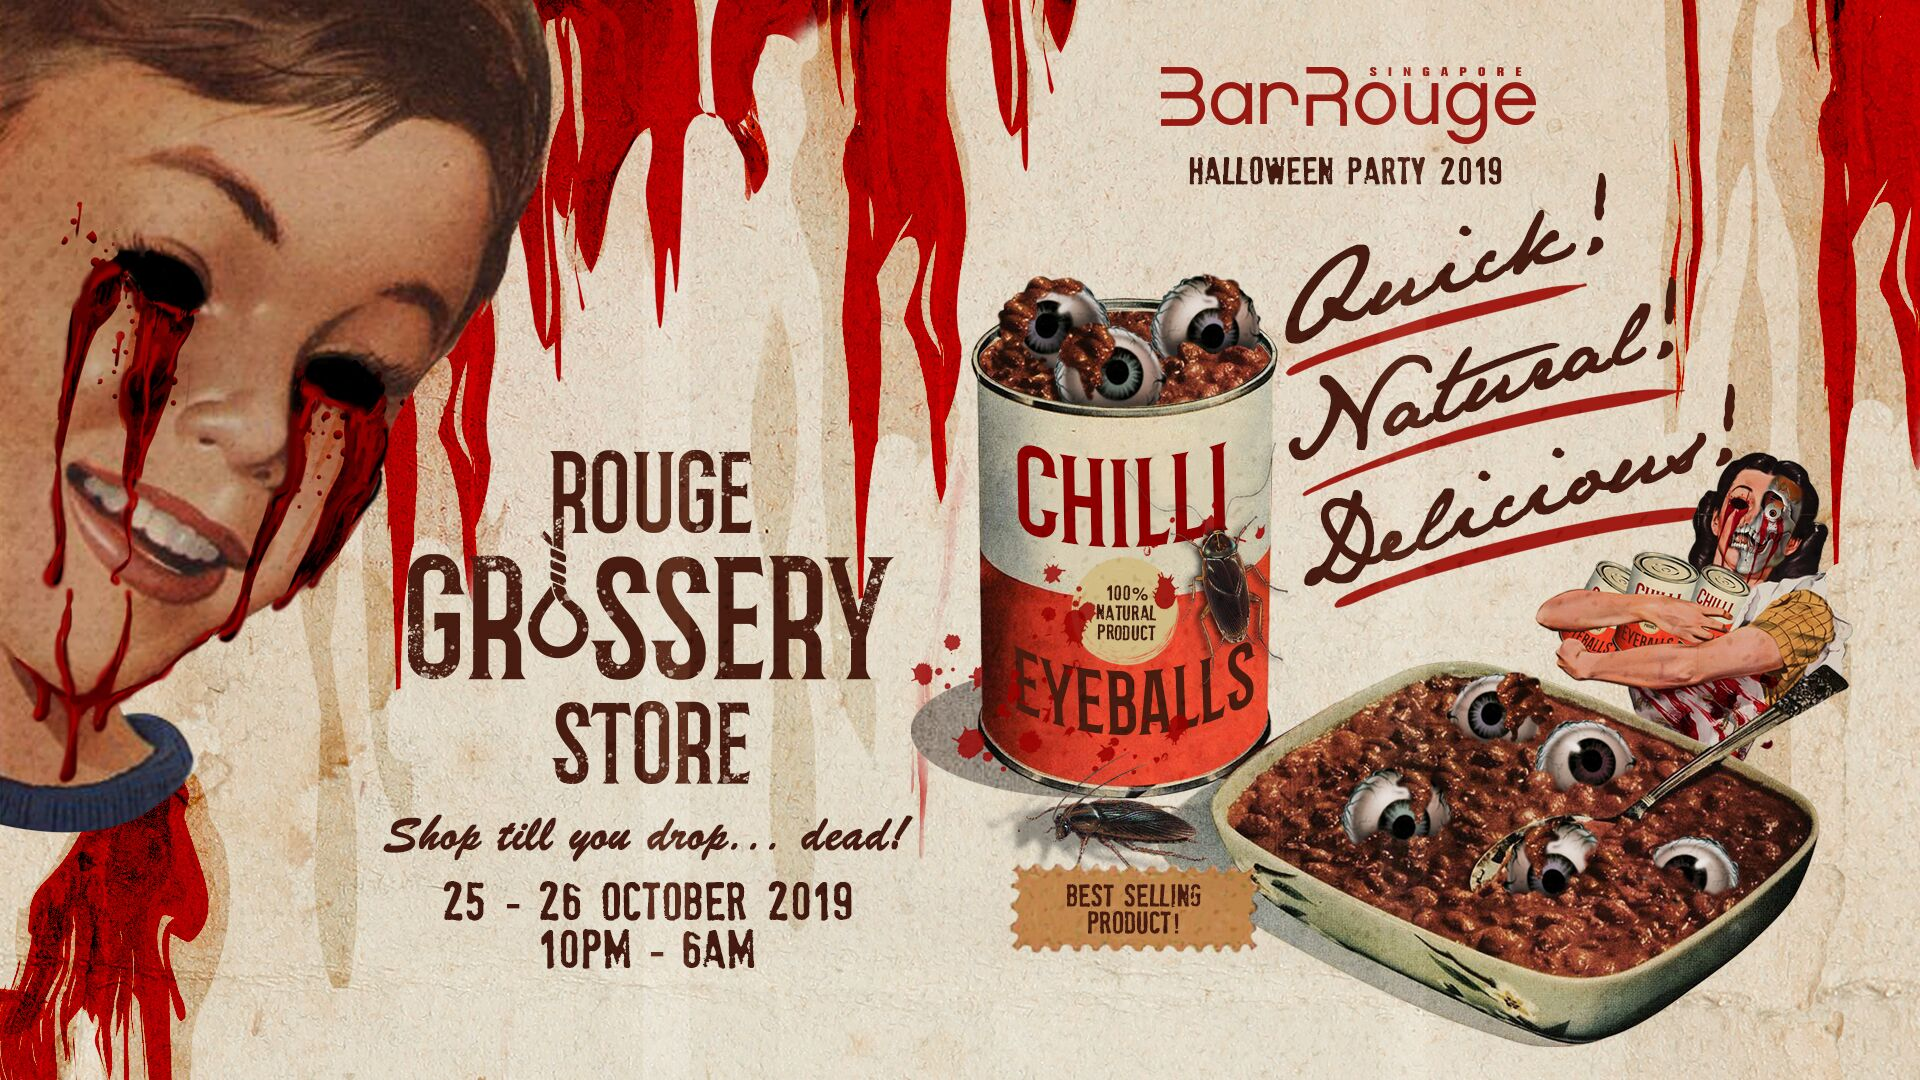 The Bar Rouge Halloween event promises to be a gruesome one